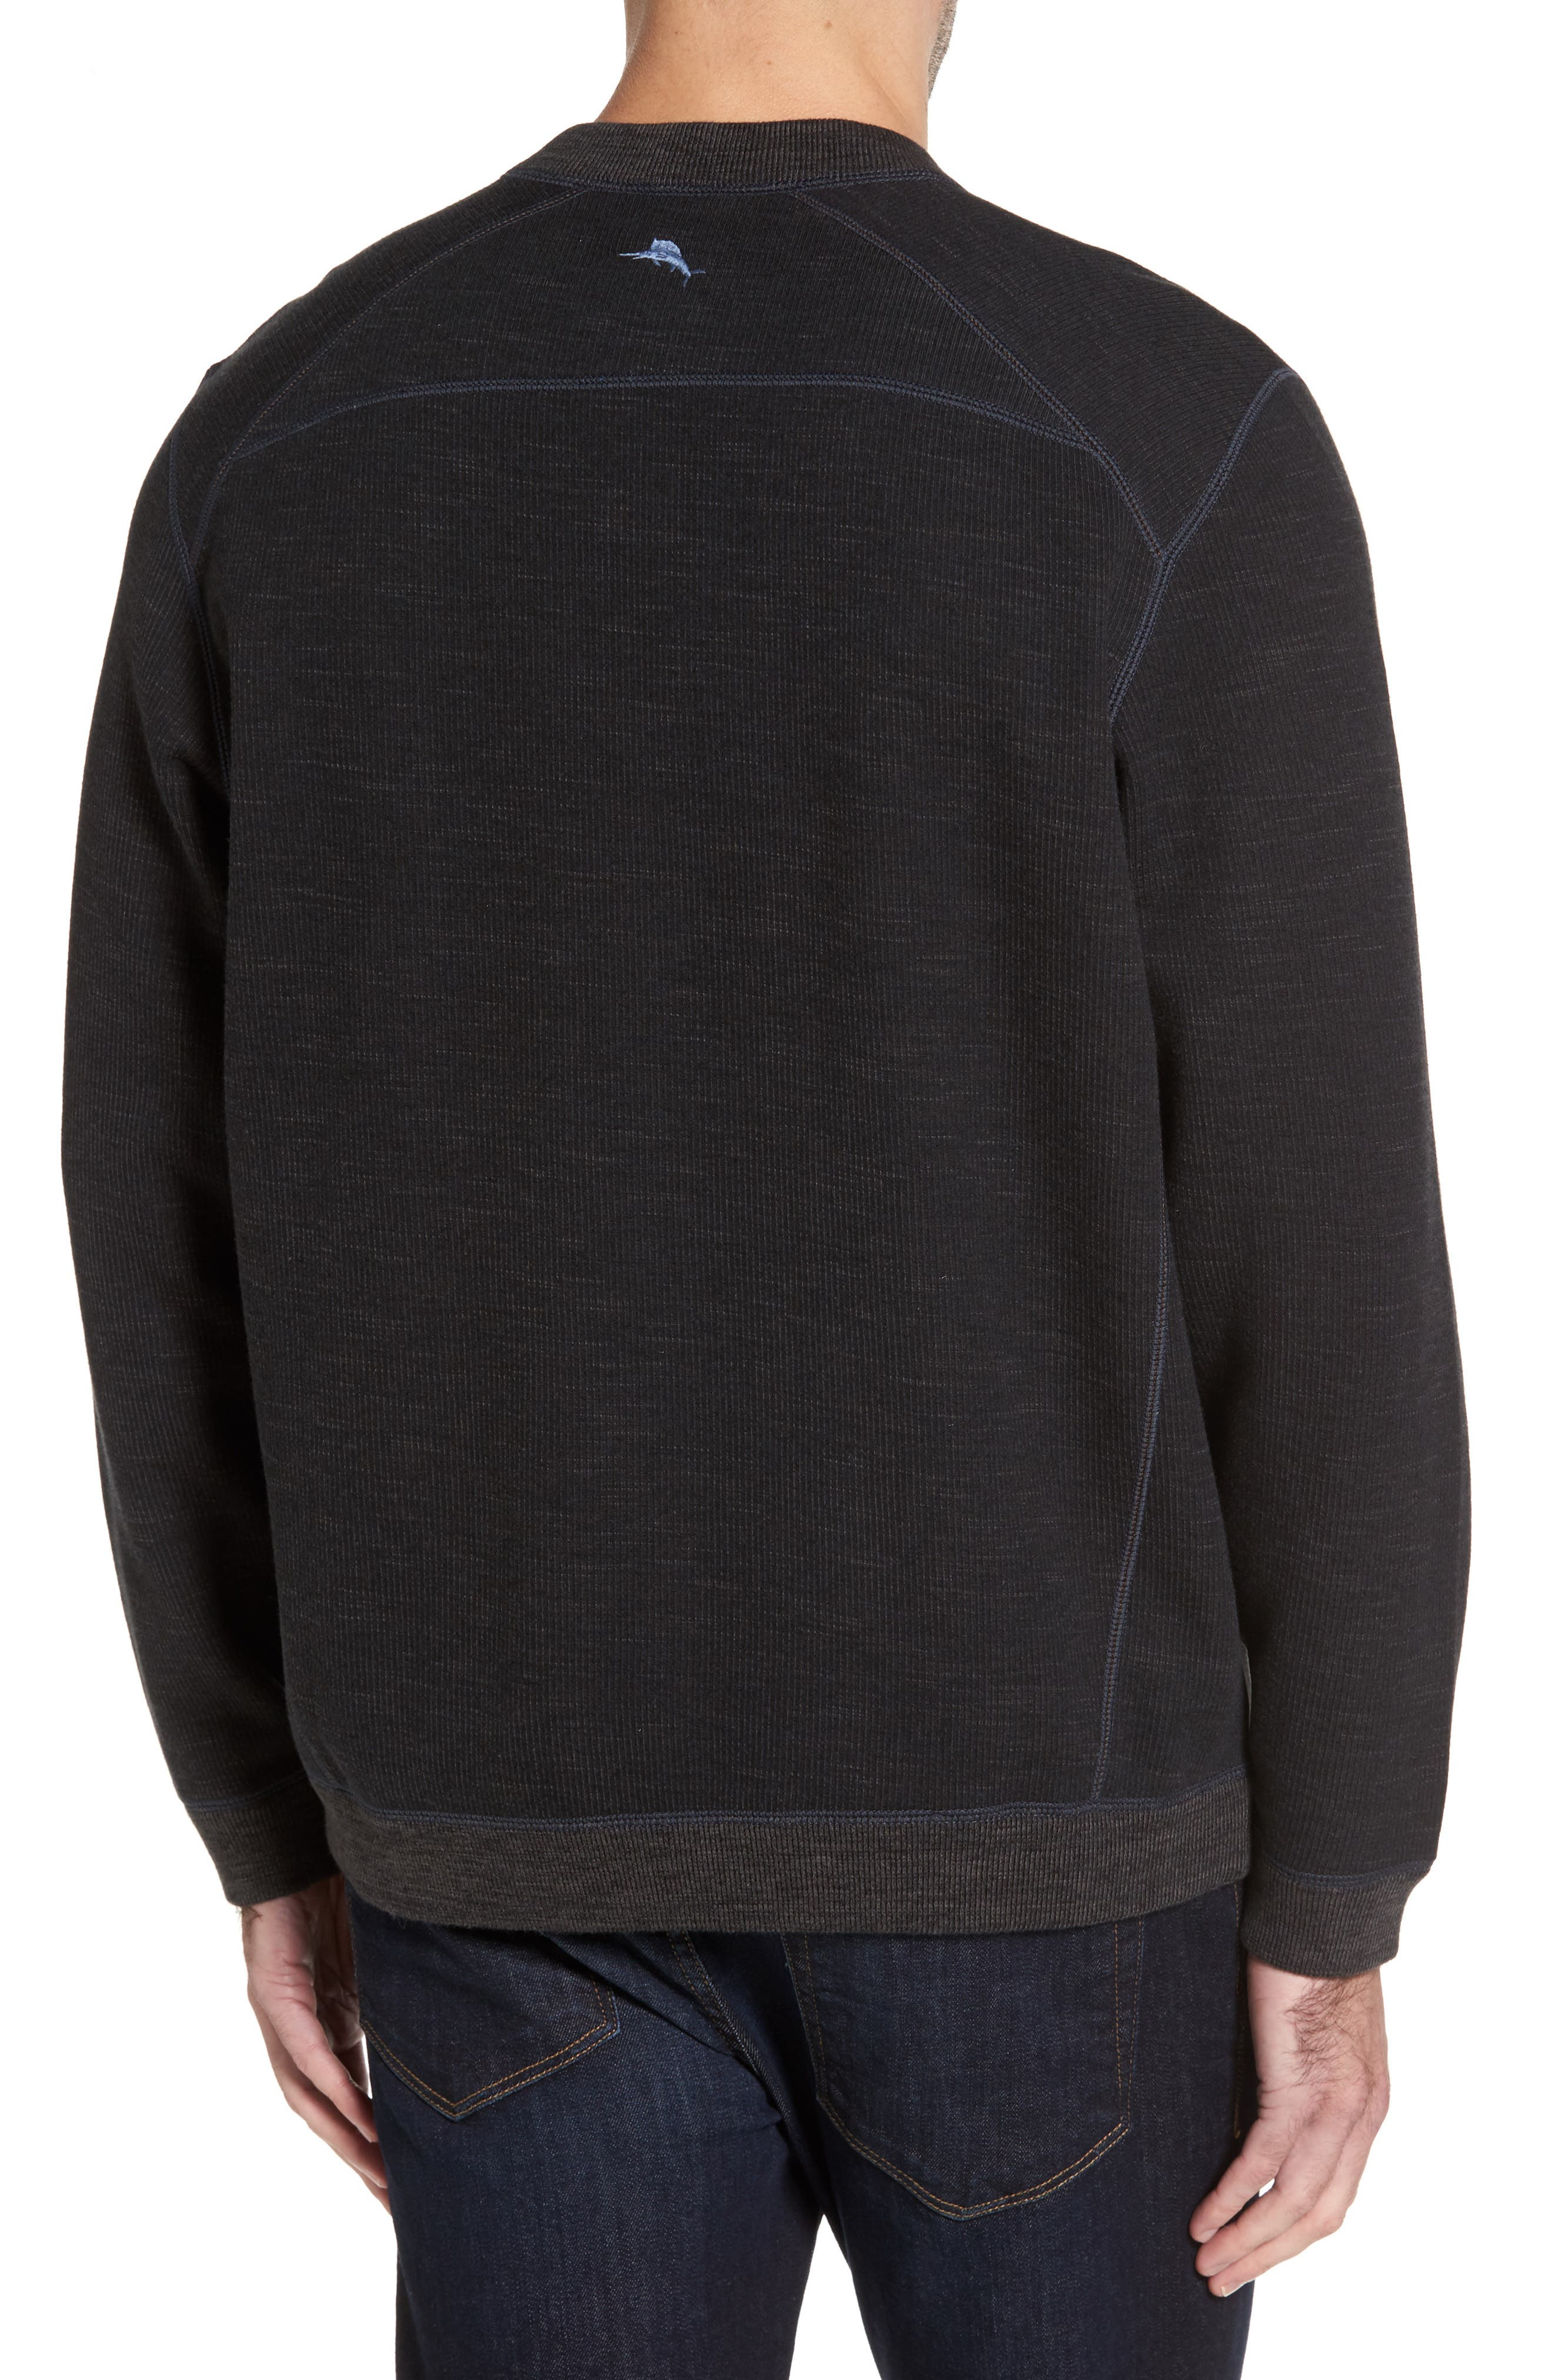 Flipsider Abaco Pullover,                             Alternate thumbnail 6, color,